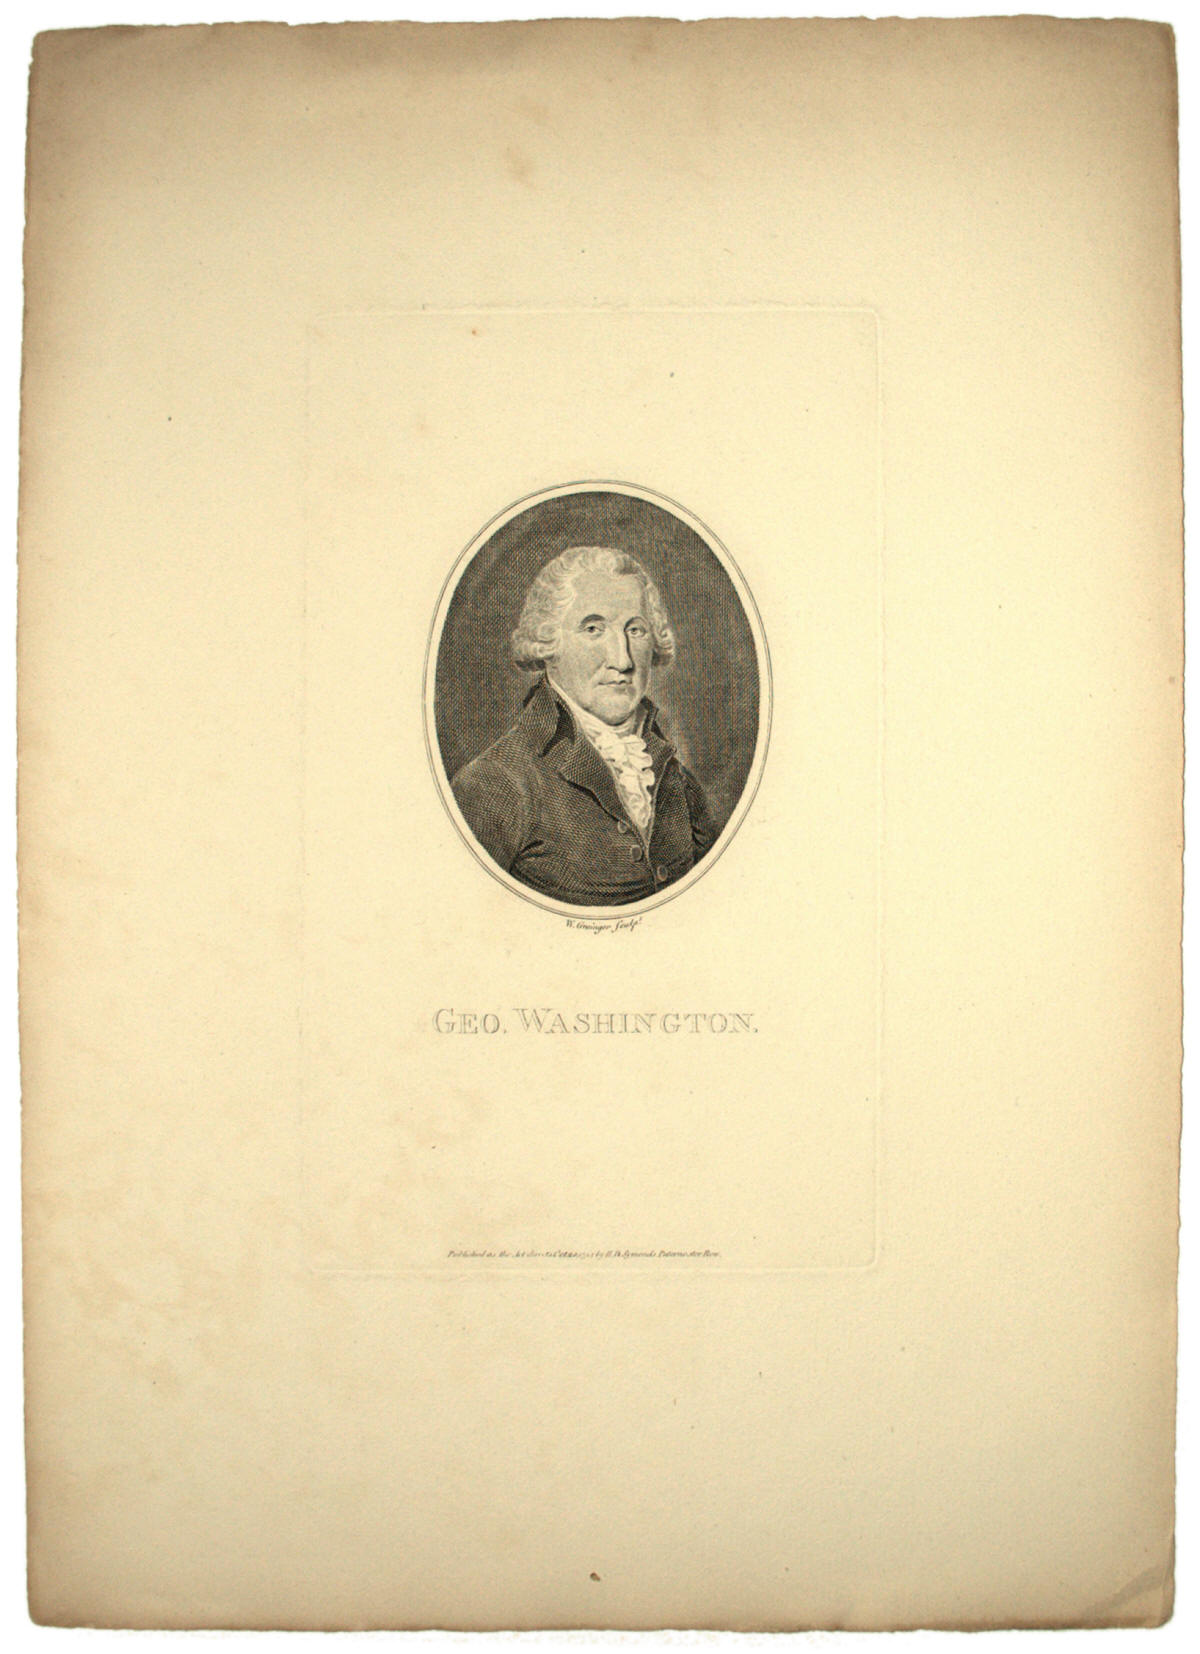 George Washington engraving by Grainger after Robertson